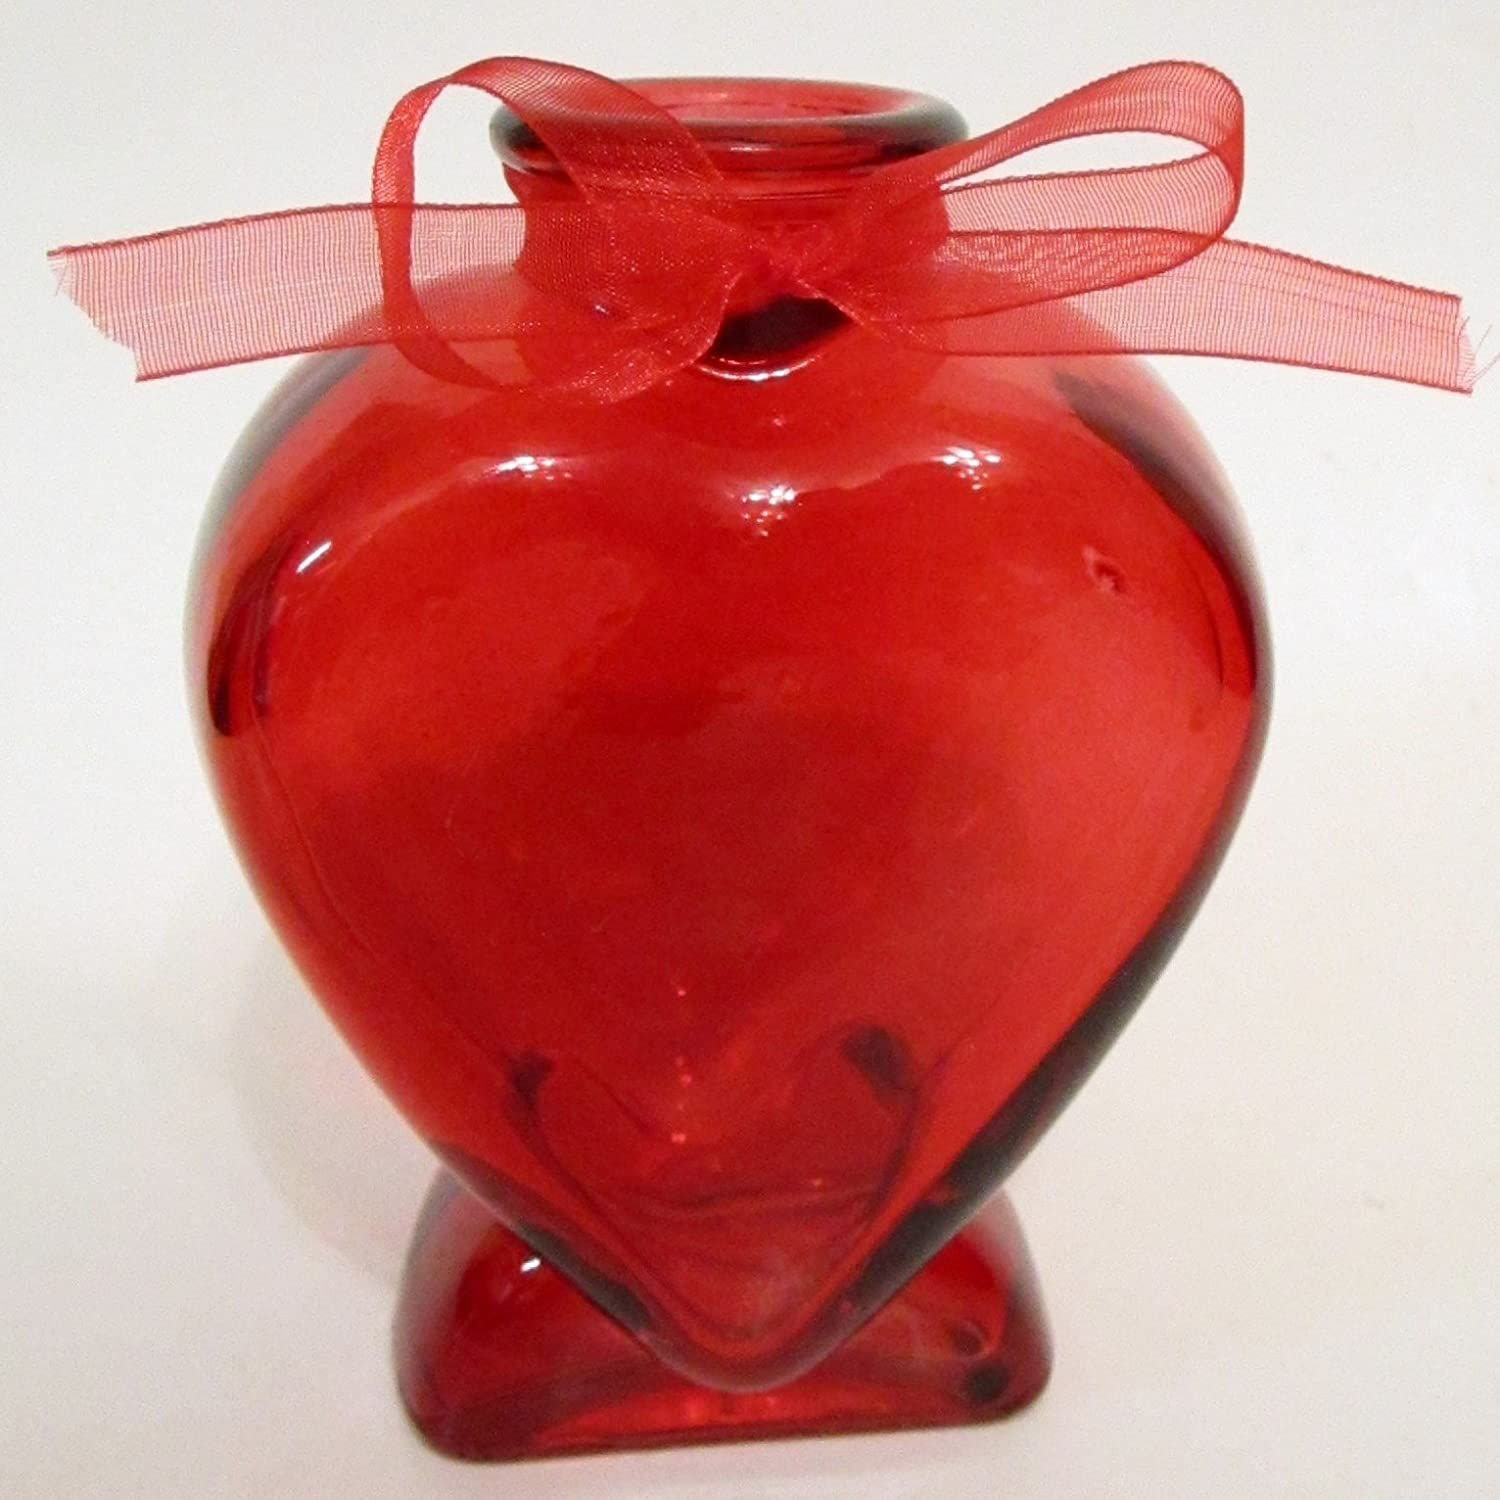 Amazon heart shaped red glass bud vase with bow 5 in home amazon heart shaped red glass bud vase with bow 5 in home kitchen reviewsmspy